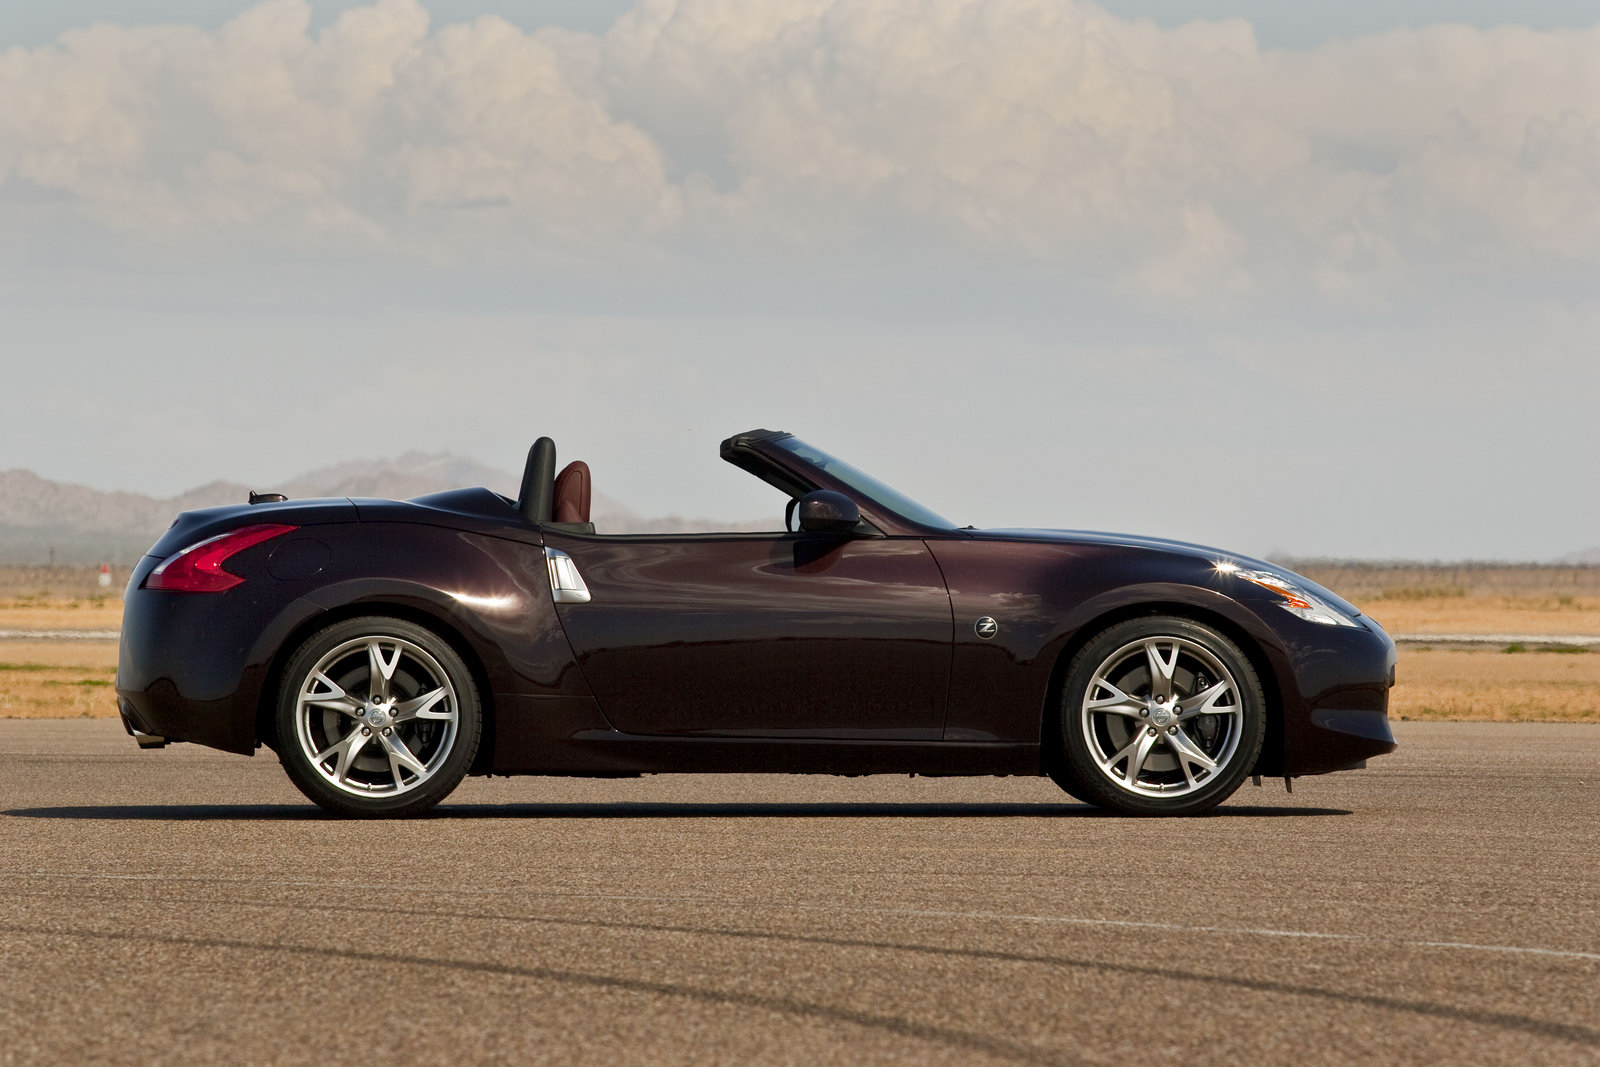 2012 Nissan 370Z 1 2012 Nissan 370Z modified with typical Oil Cooler and Base revised